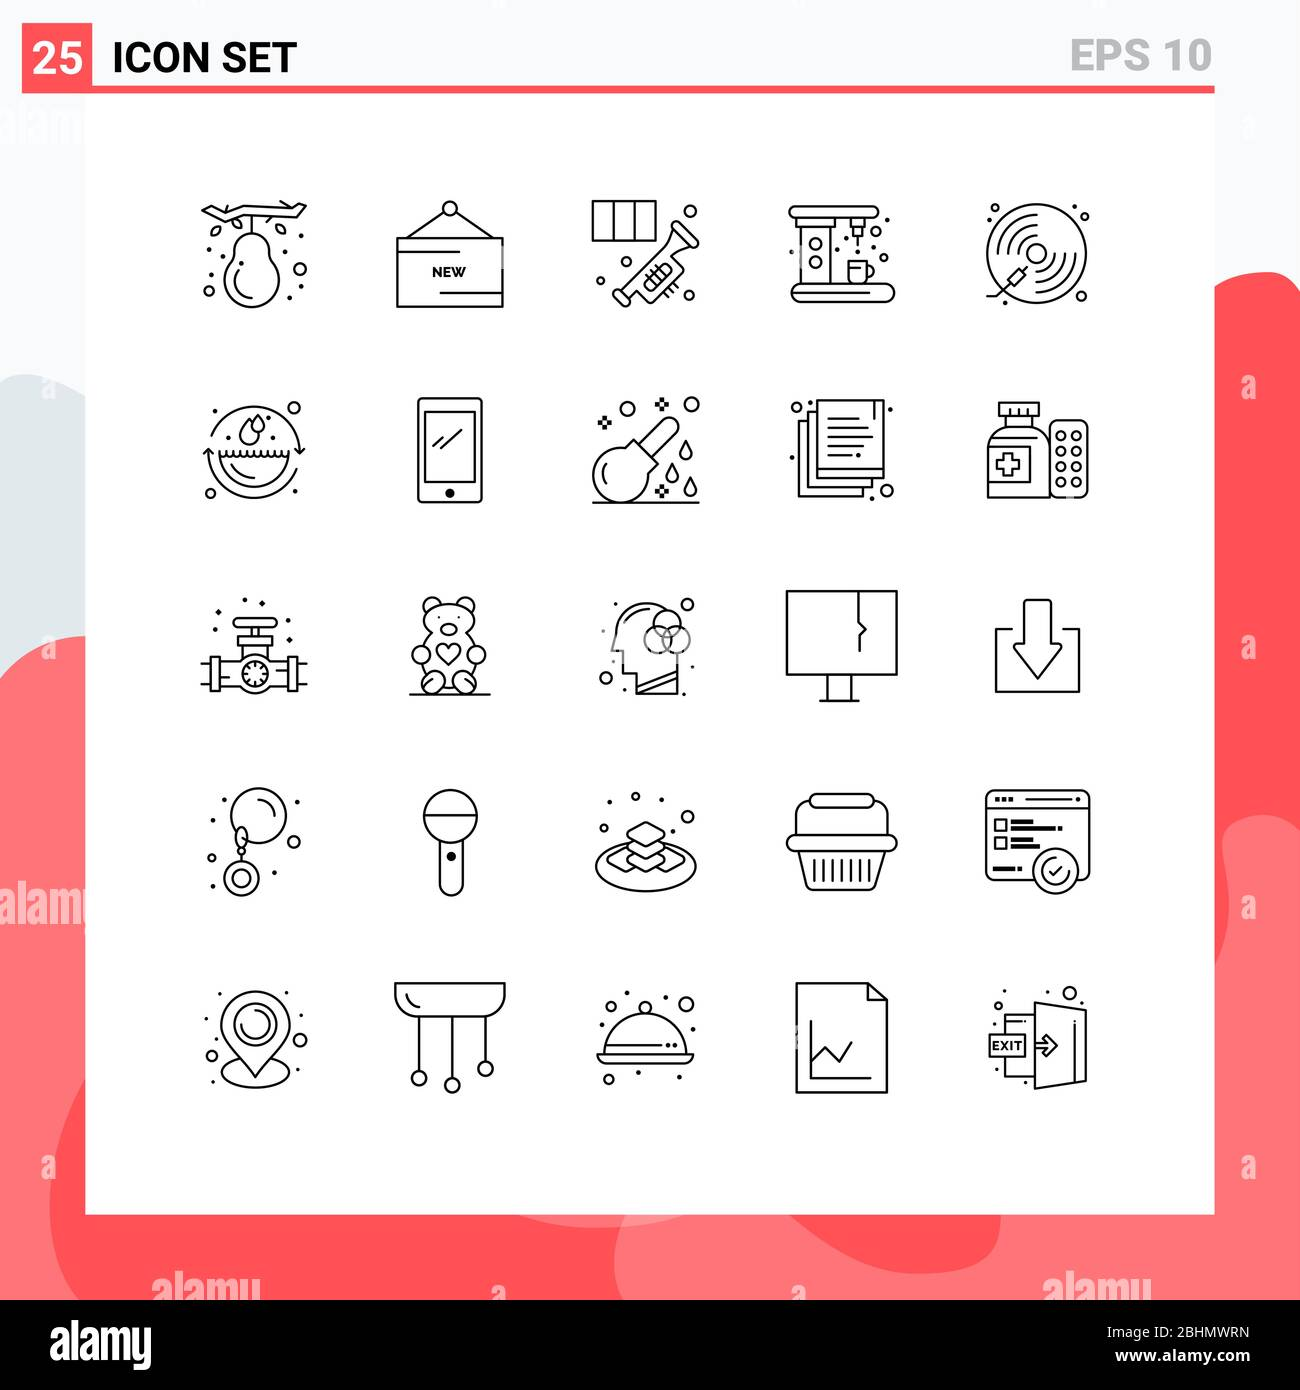 25 Line concept for Websites Mobile and Apps maker, coffee, promotion, appliances, music Editable Vector Design Elements Stock Vector